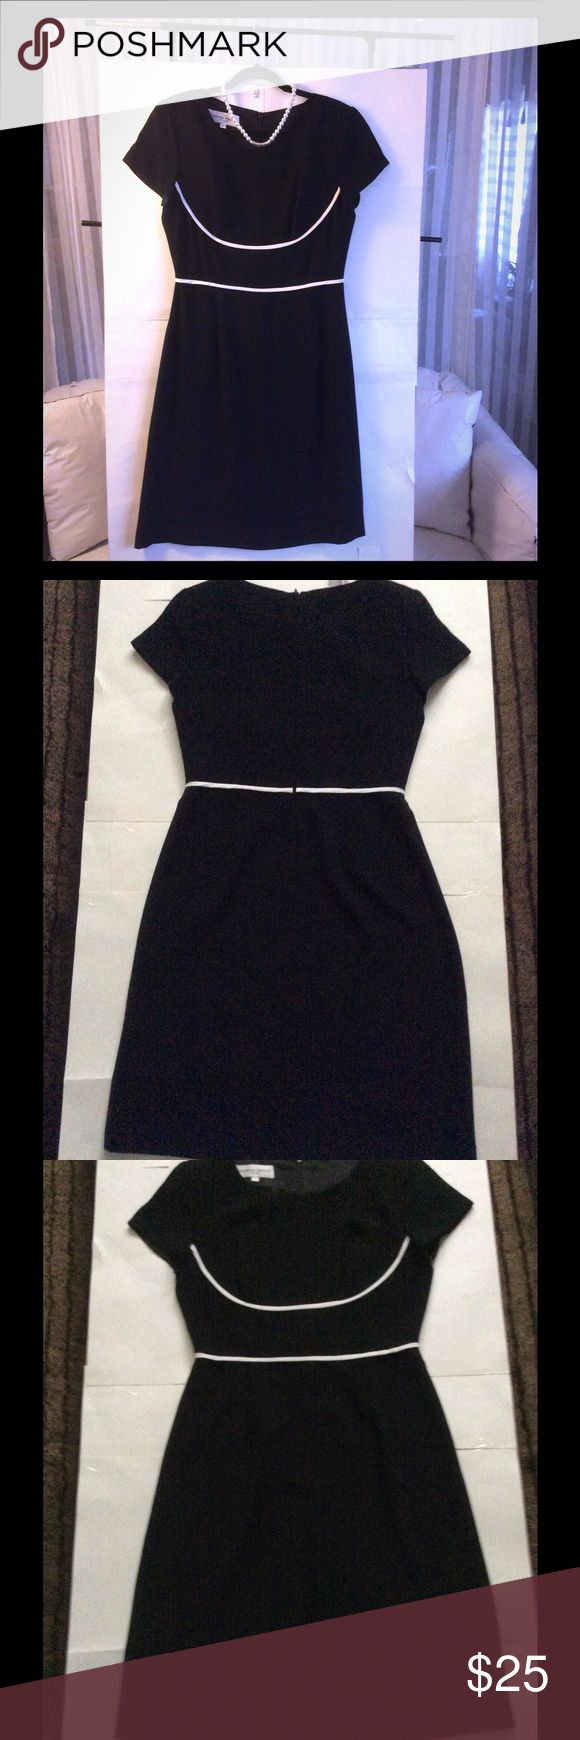 Donna Ricco Black and White Dress Donna Ricco Black Dress with white piping around waist and chest Donna Ricco Dresses